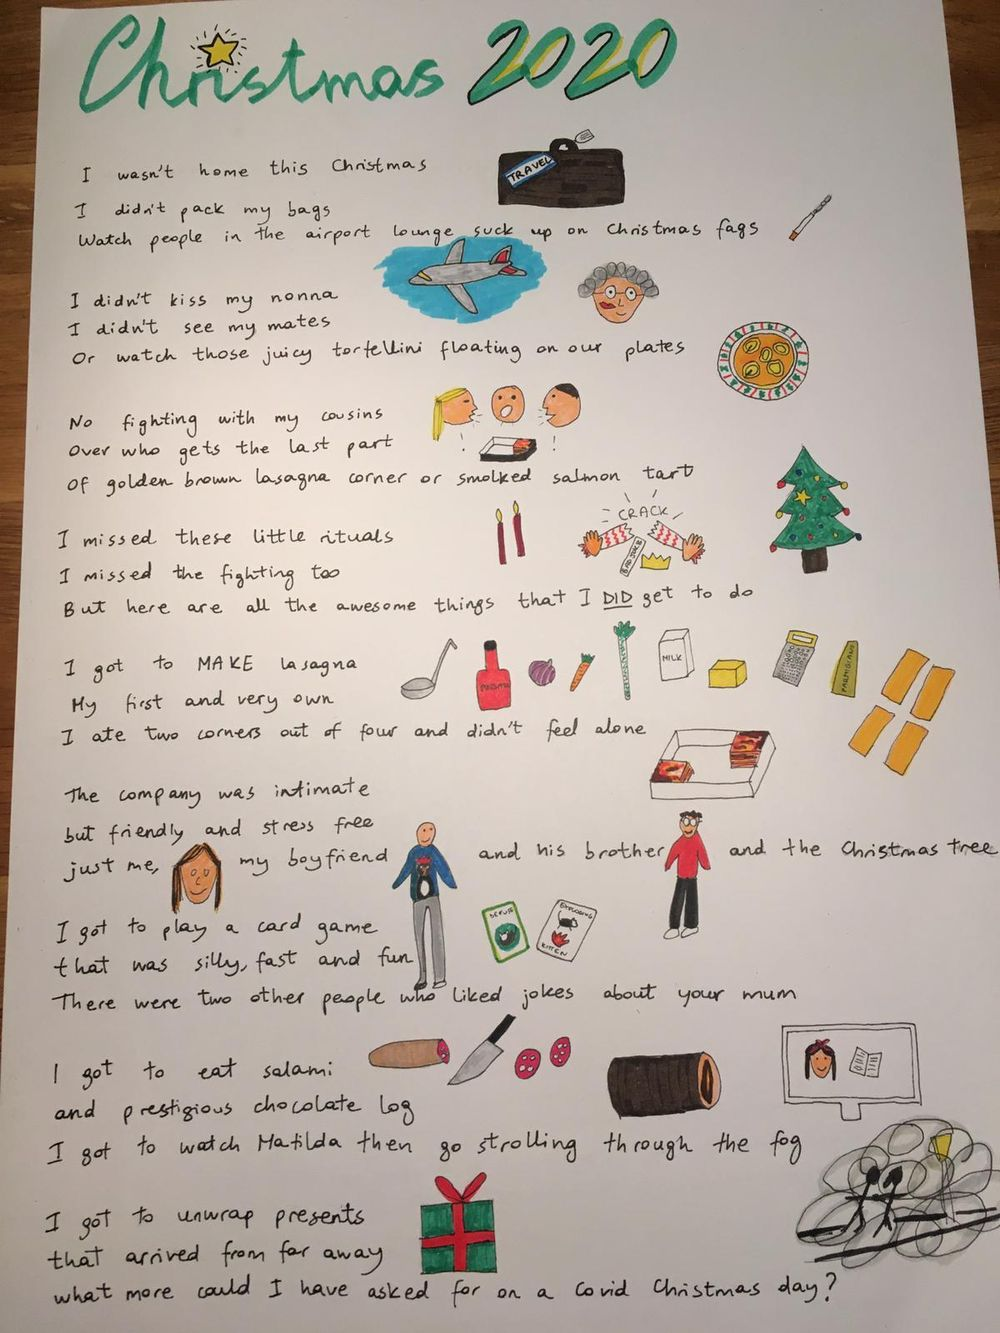 Language of Love + Christmas 2020 - image 2 - student project